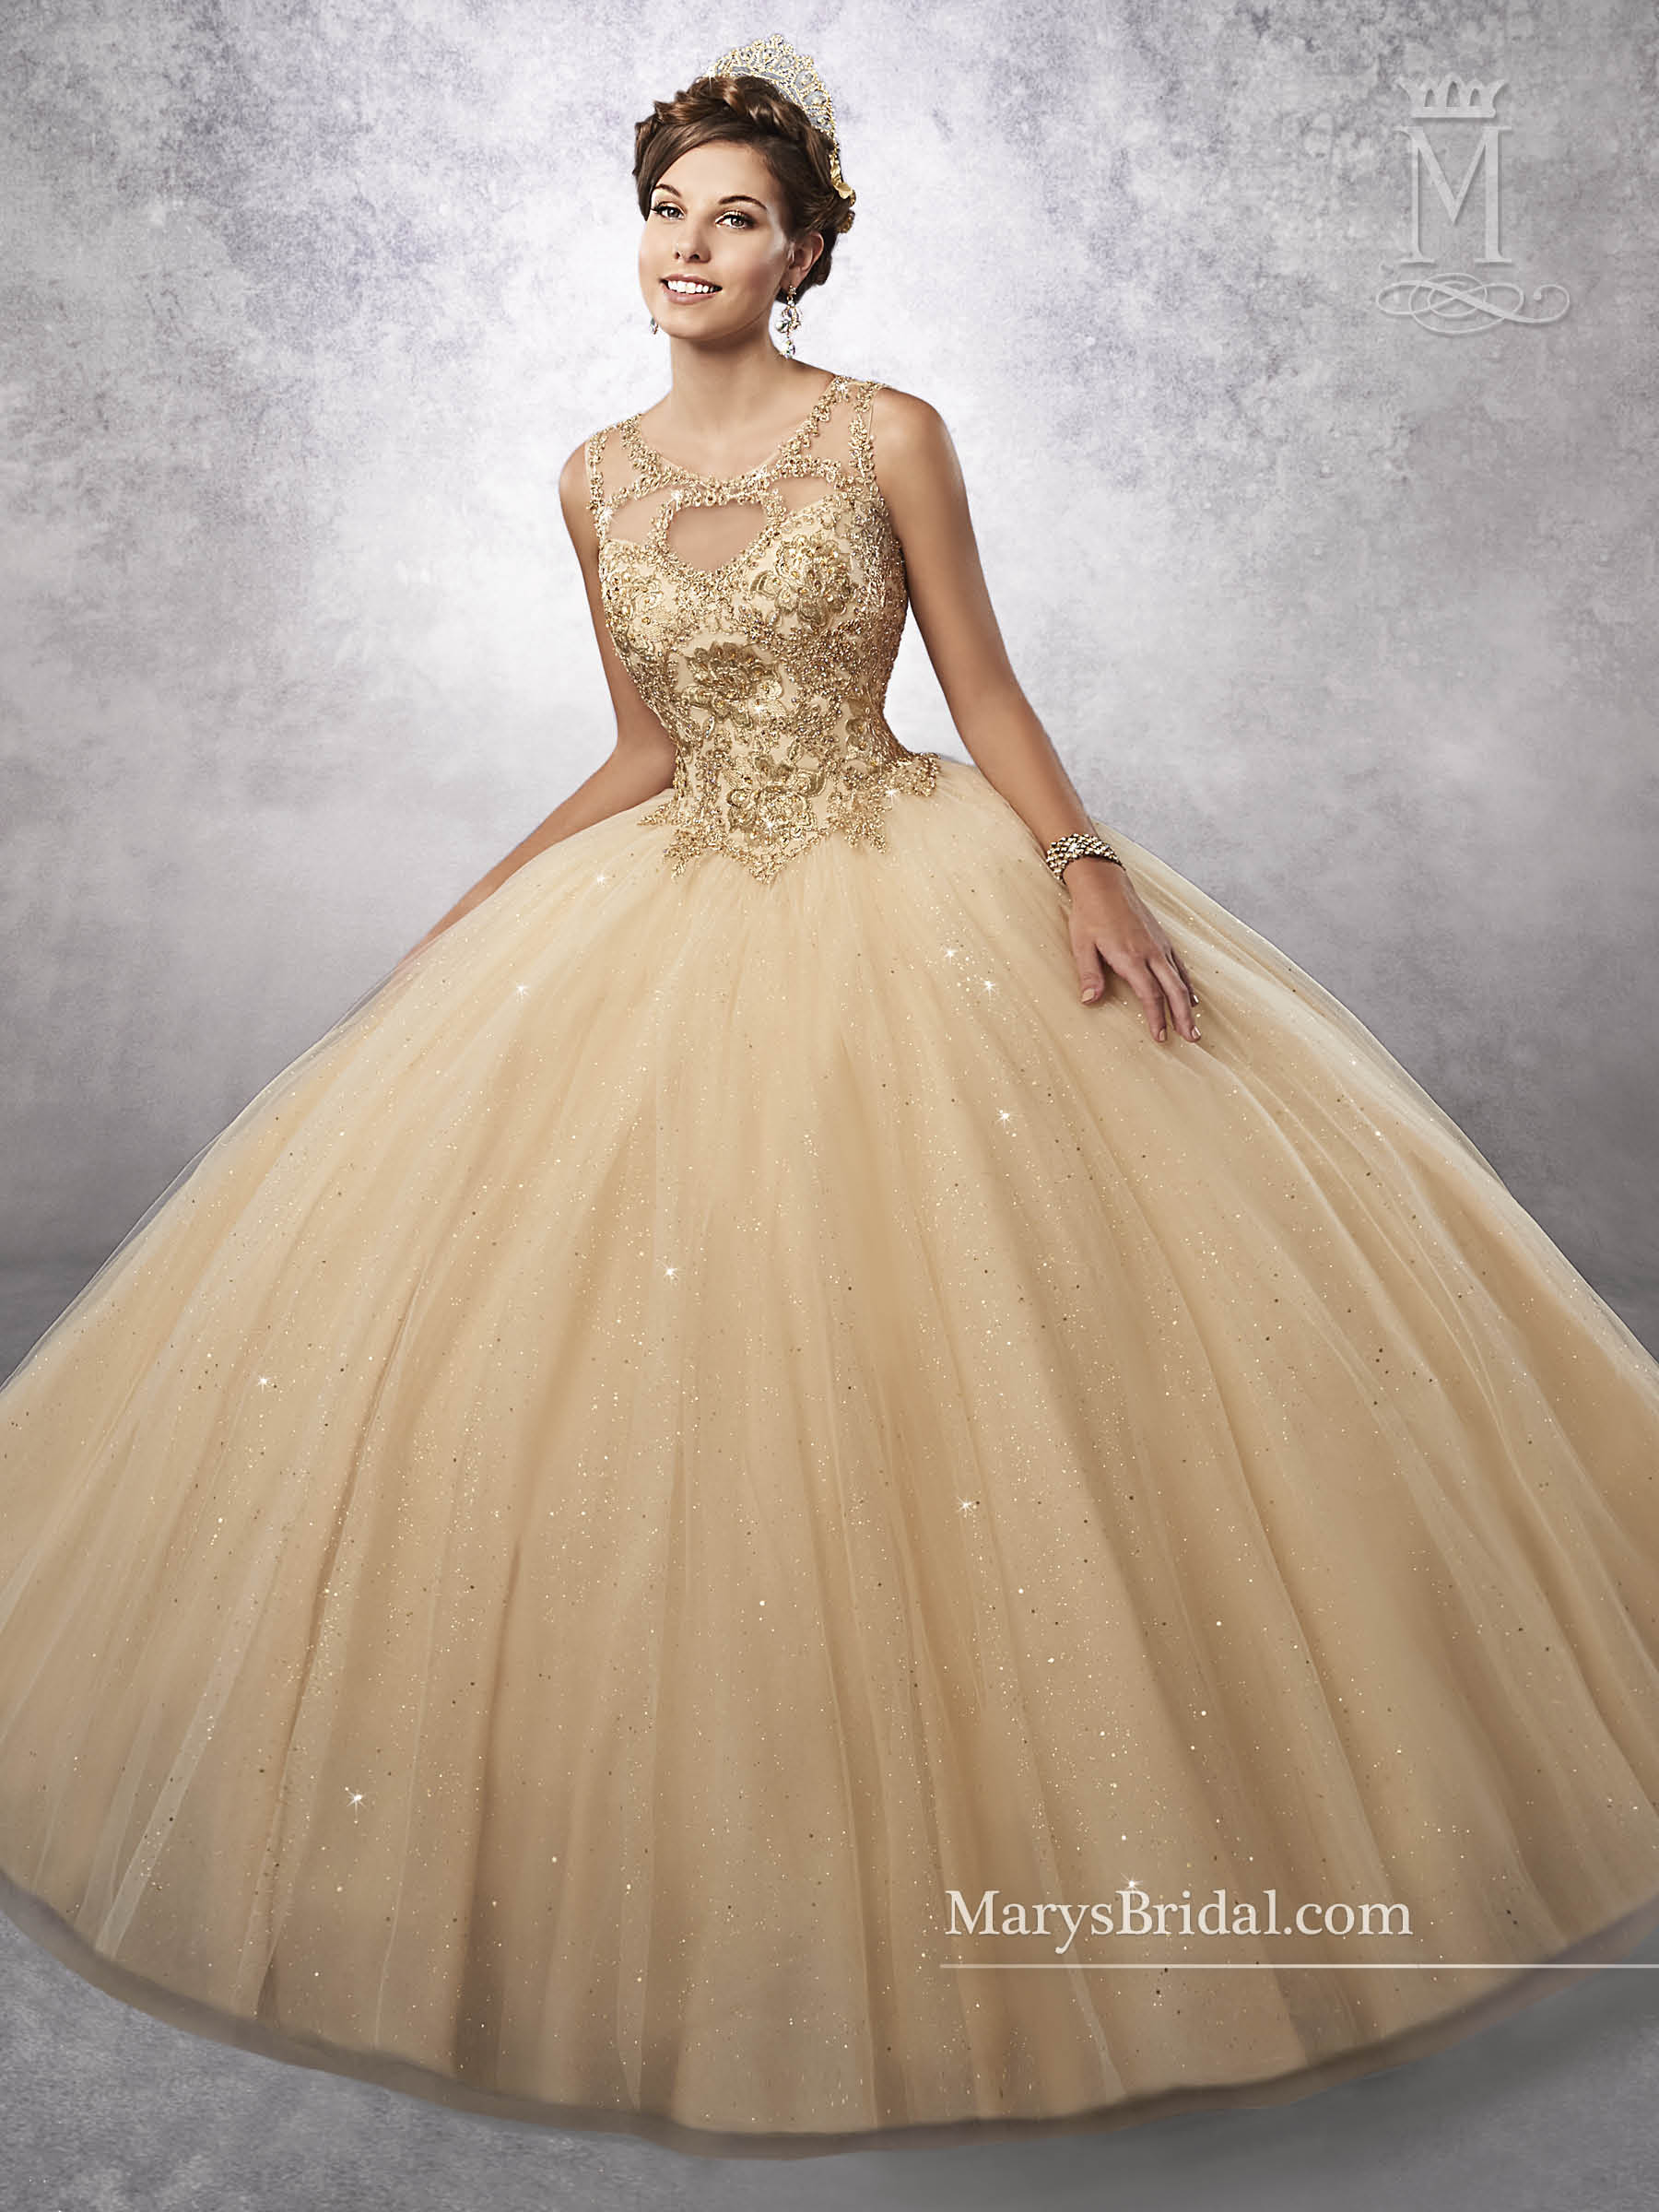 Pink and gold quinceanera dresses forecast to wear for autumn in 2019